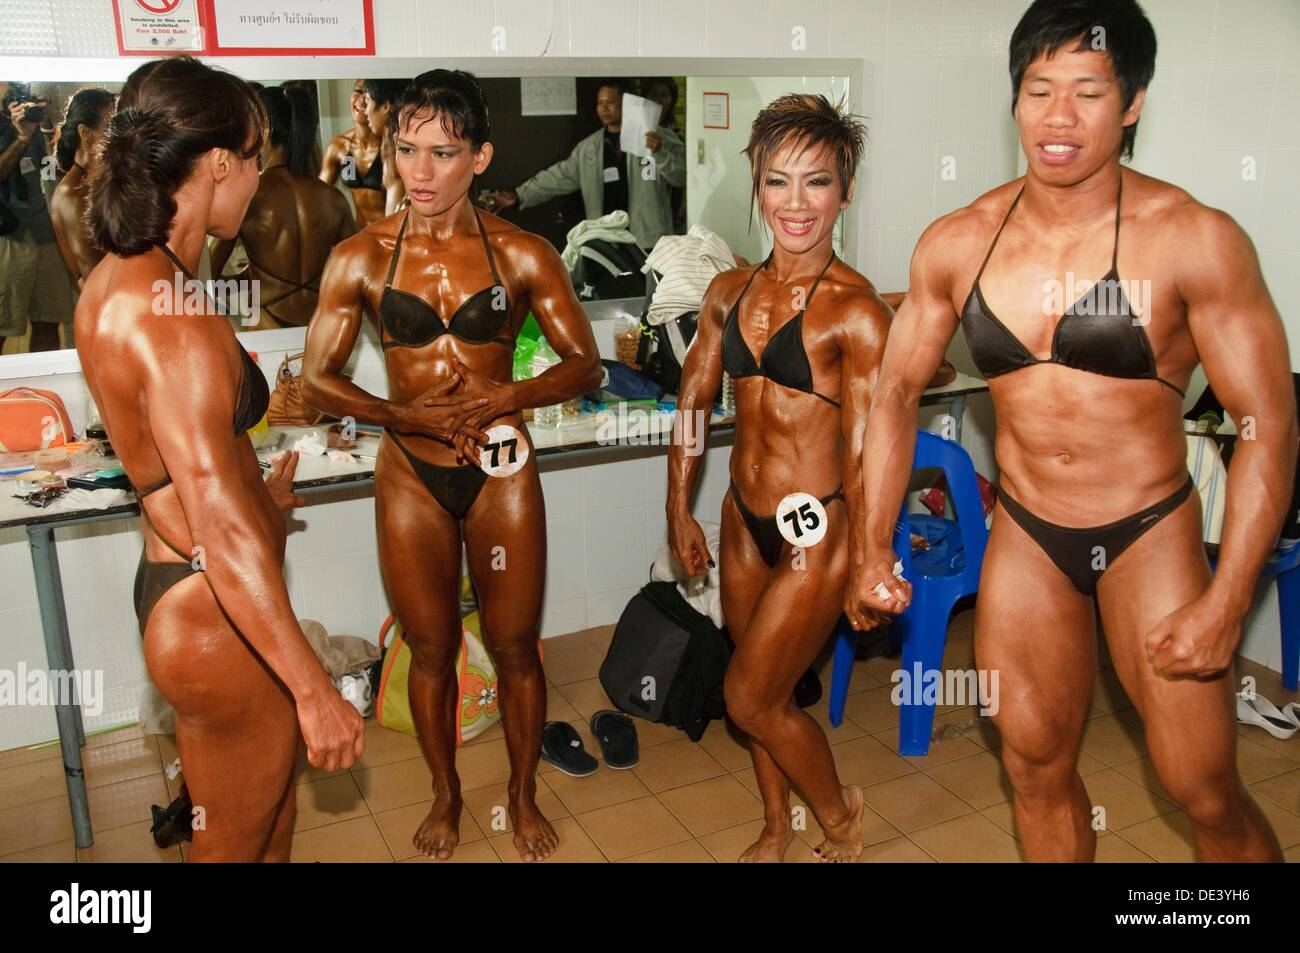 ladyboy bodybuilders taking part in a competition in